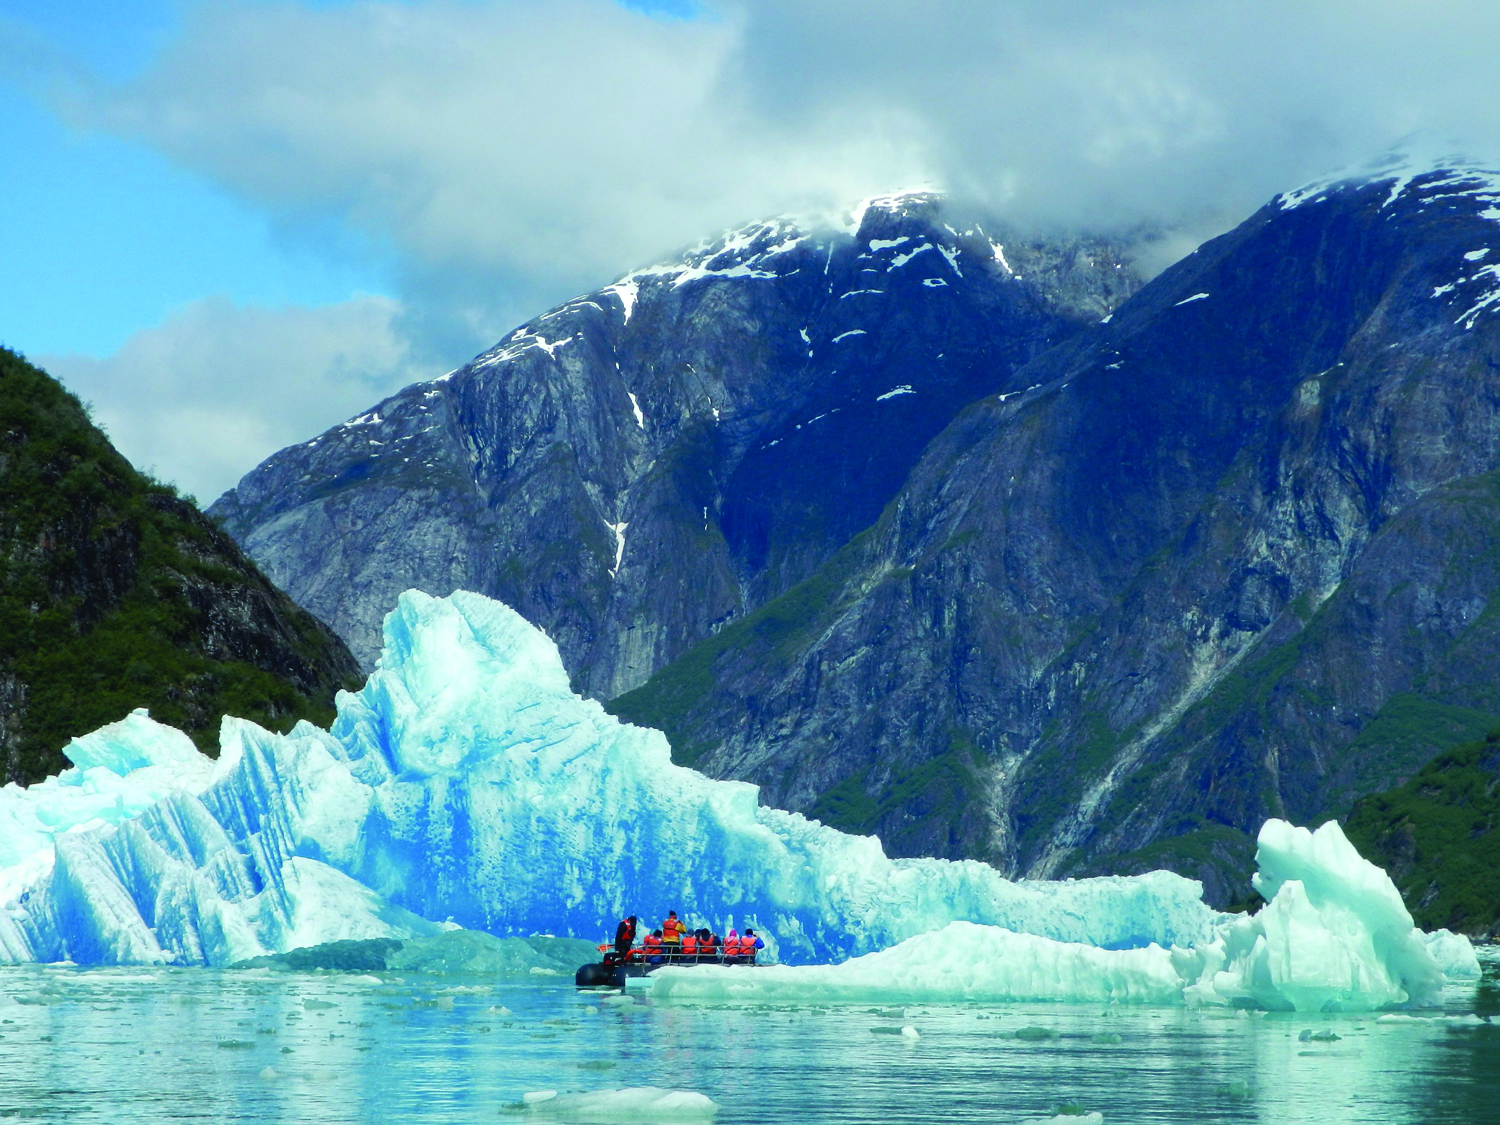 AdventureSmith Explorations has debuted a new 18-day excursion in Alaska that explores three national parks, including Glacier Bay.